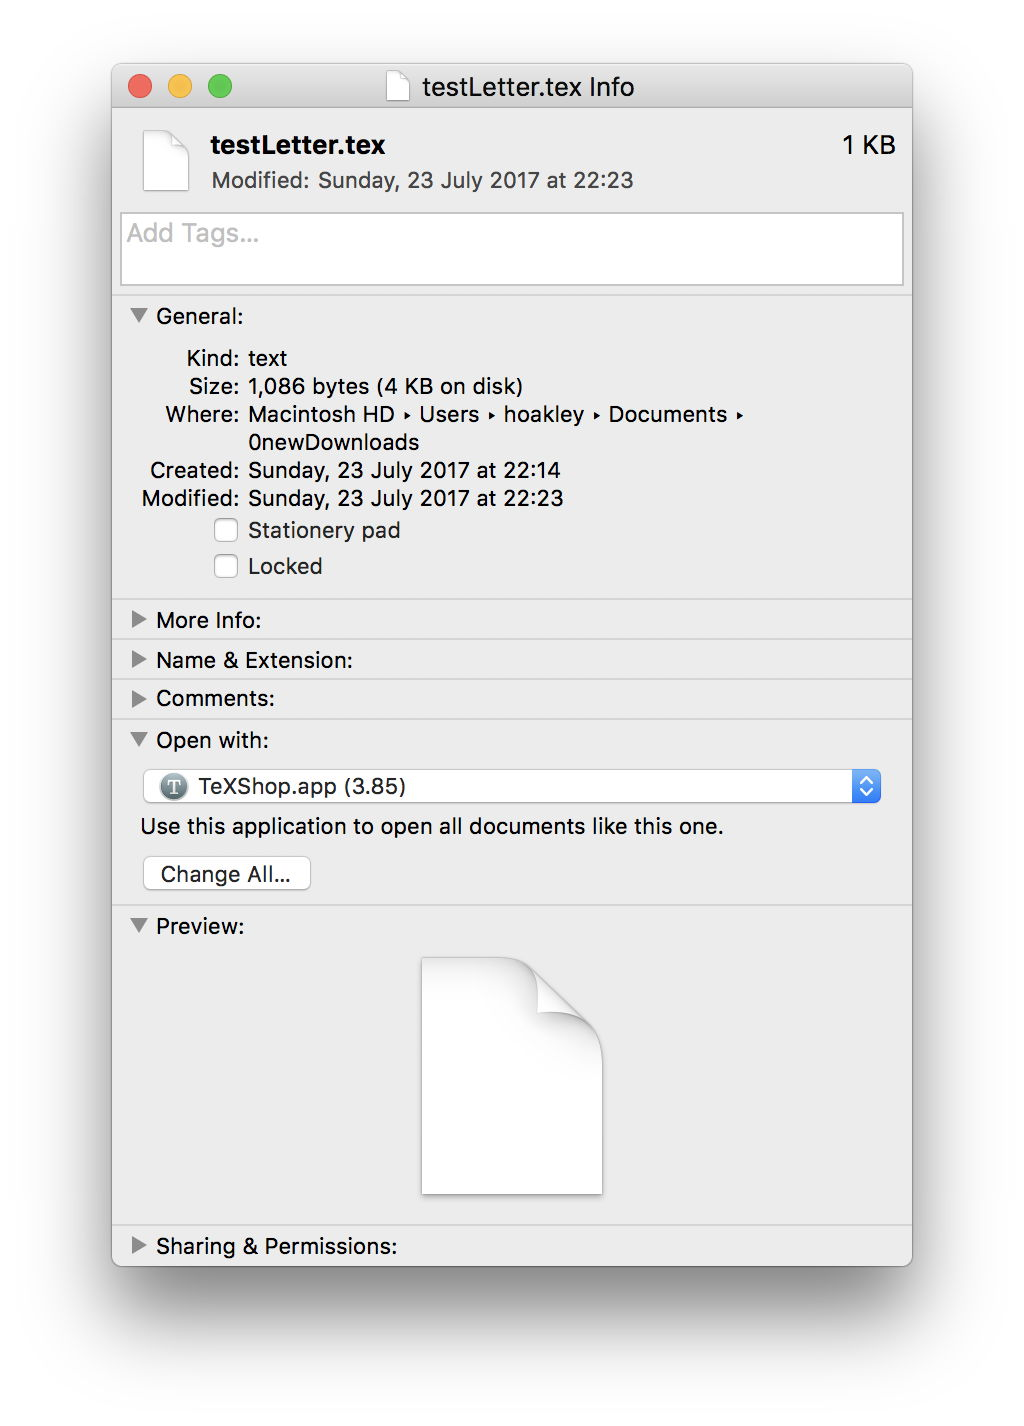 Approaches can remove and fix error code 600 on Mac